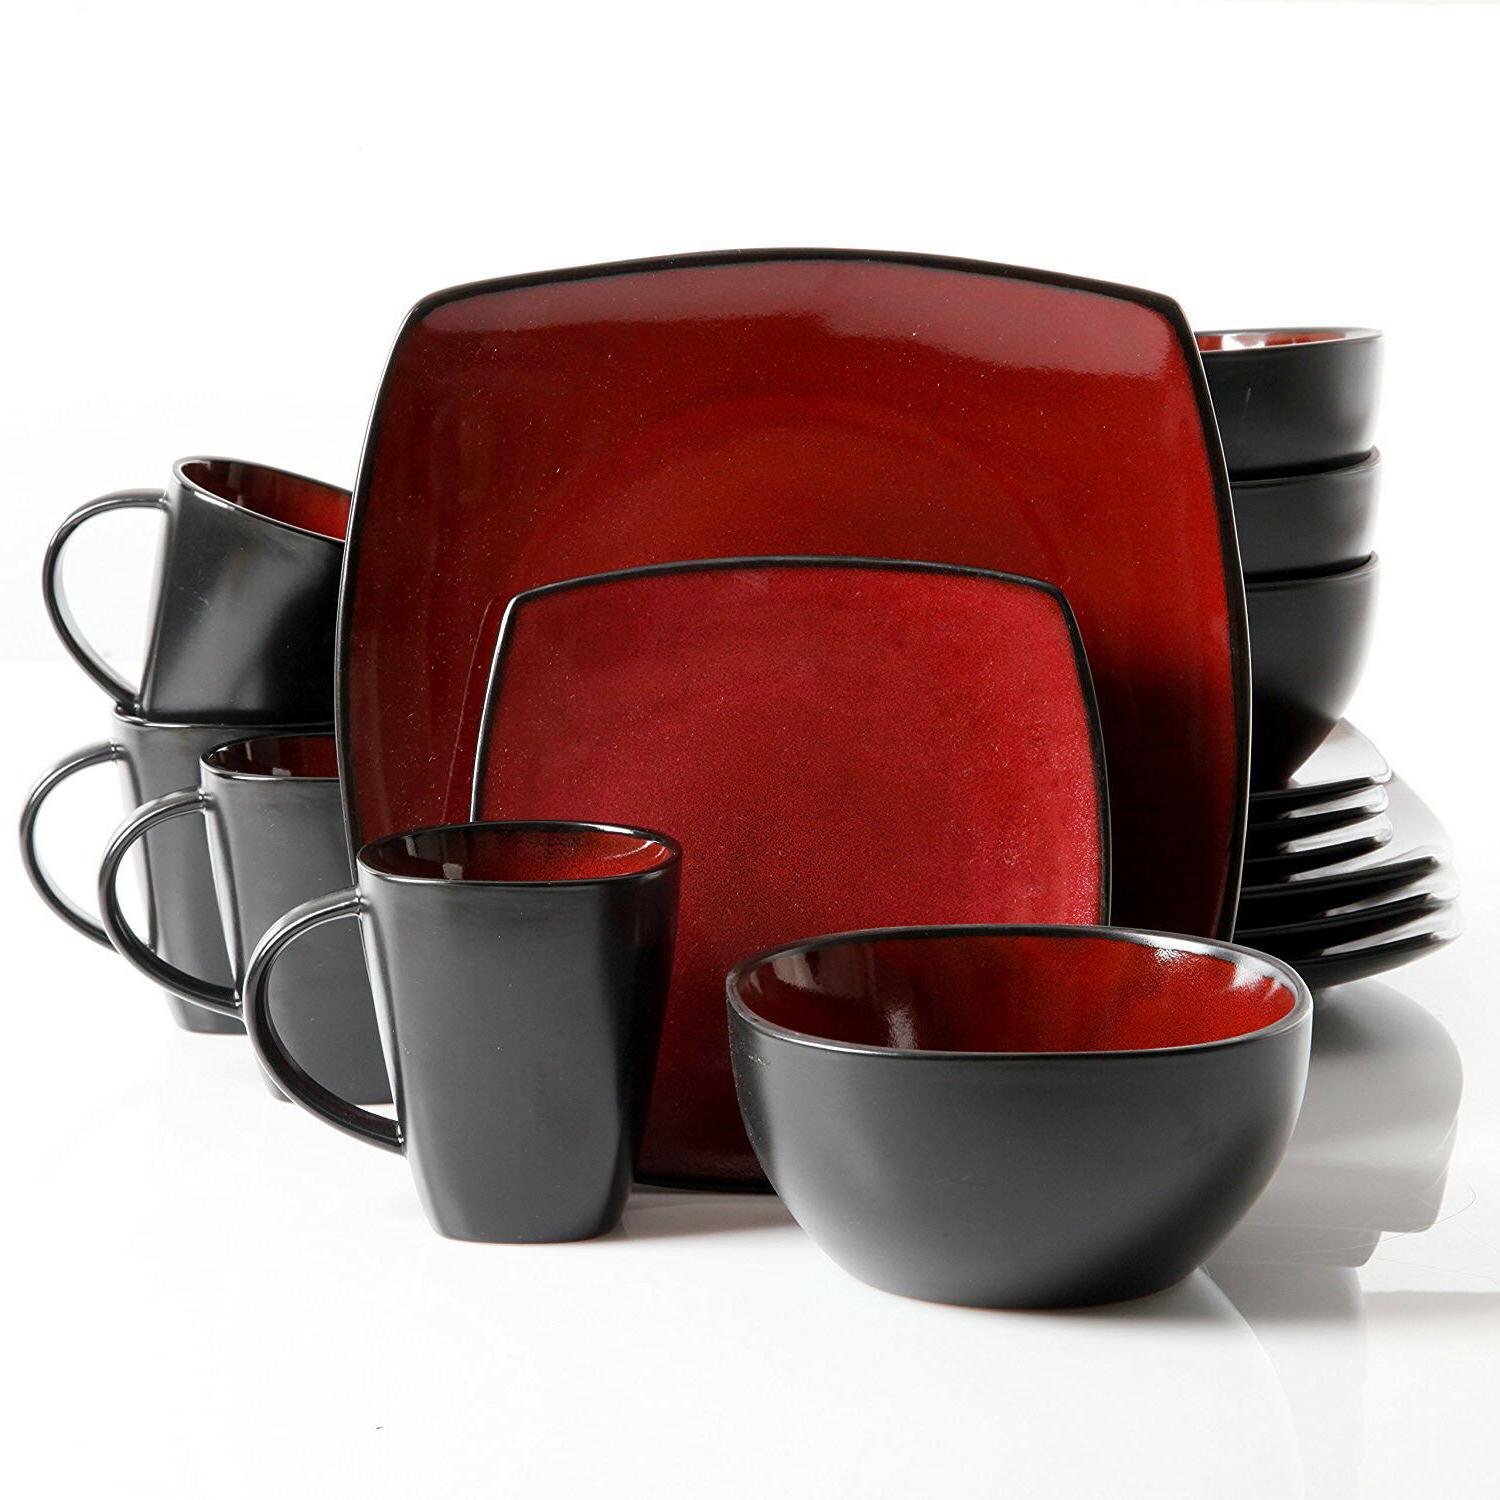 Dinnerware Square Plates Mugs Dishes Home Kitchen Red